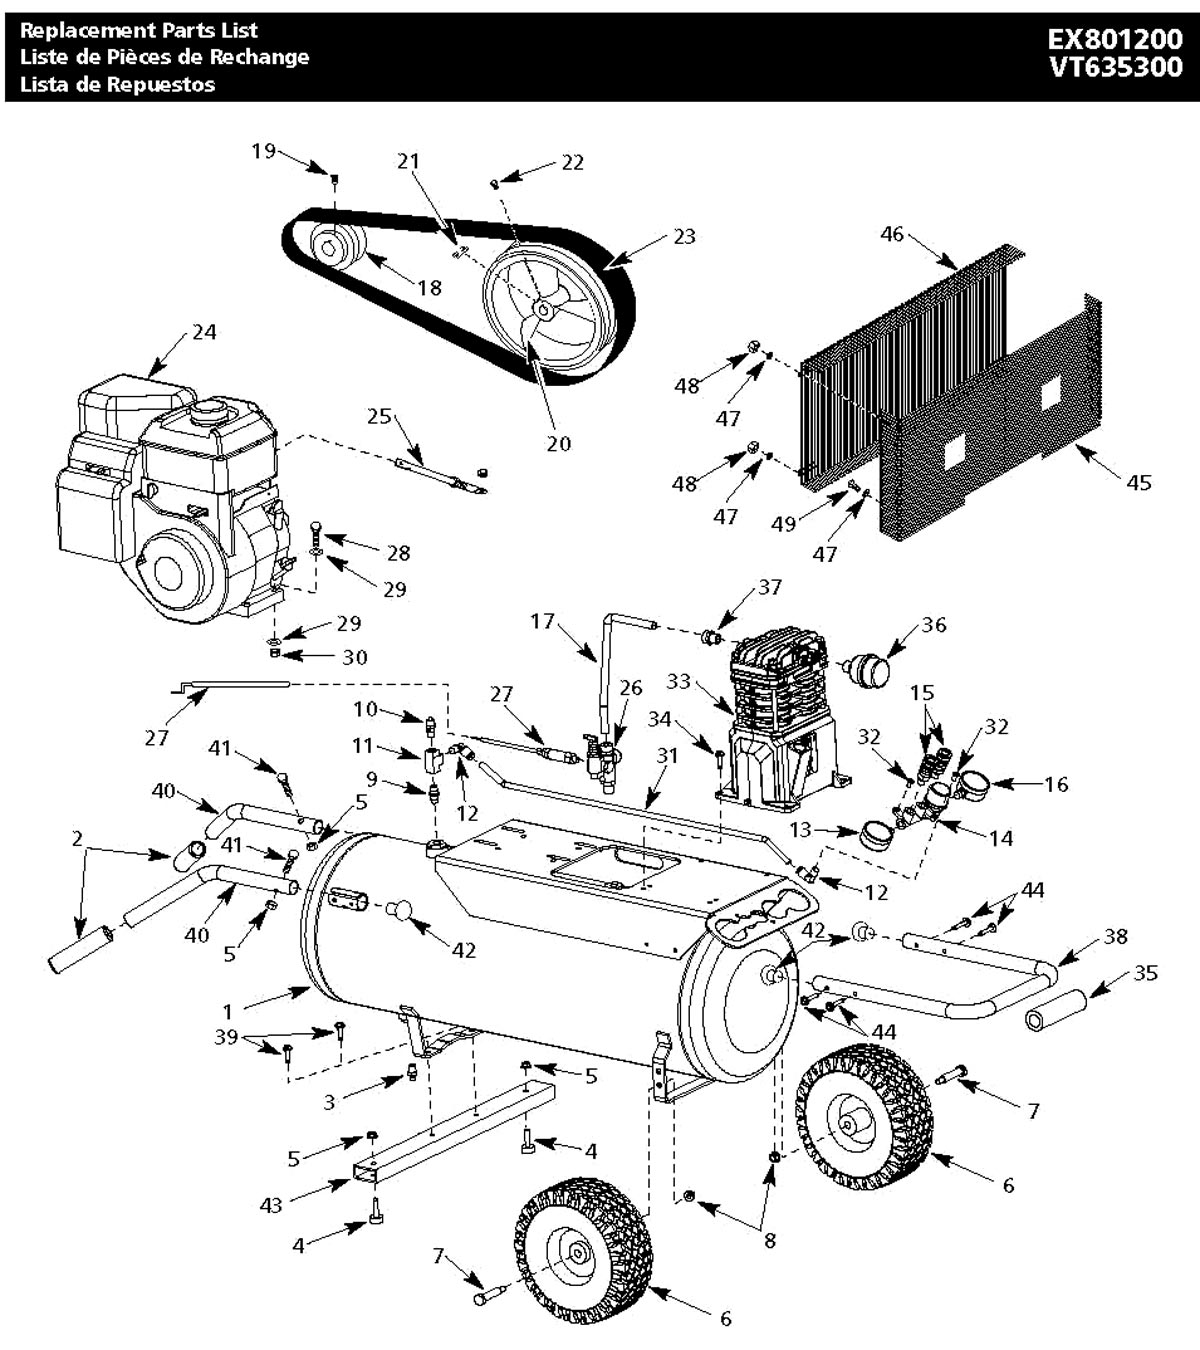 EX801200, VT635300 - Air Compressor Parts schematic